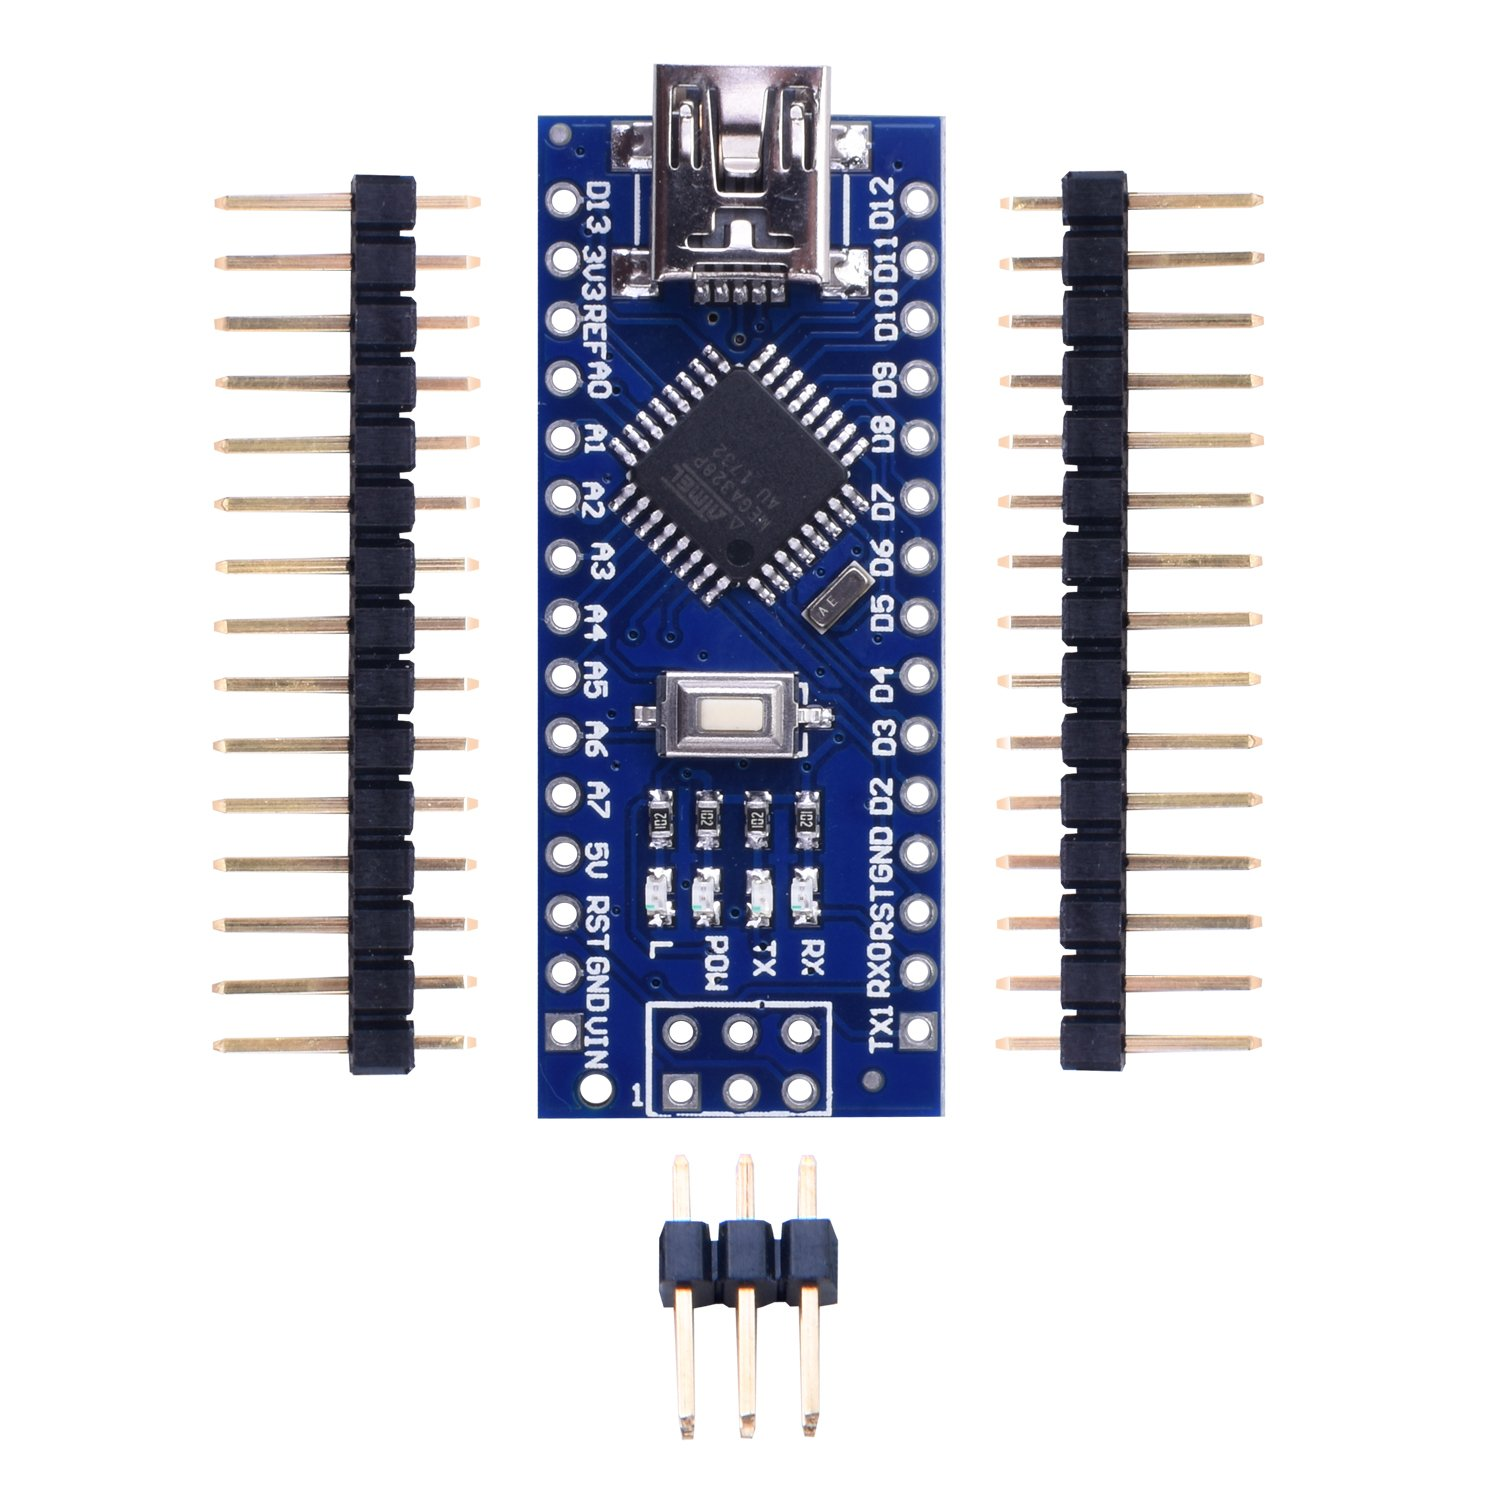 UNIROI Mini Nano V3.0 CH340G ATmega328P 5V 16M Micro Controller Board for Arduino (with 2pcs 15pin headers, 1pcs 6pin headers) UKY64